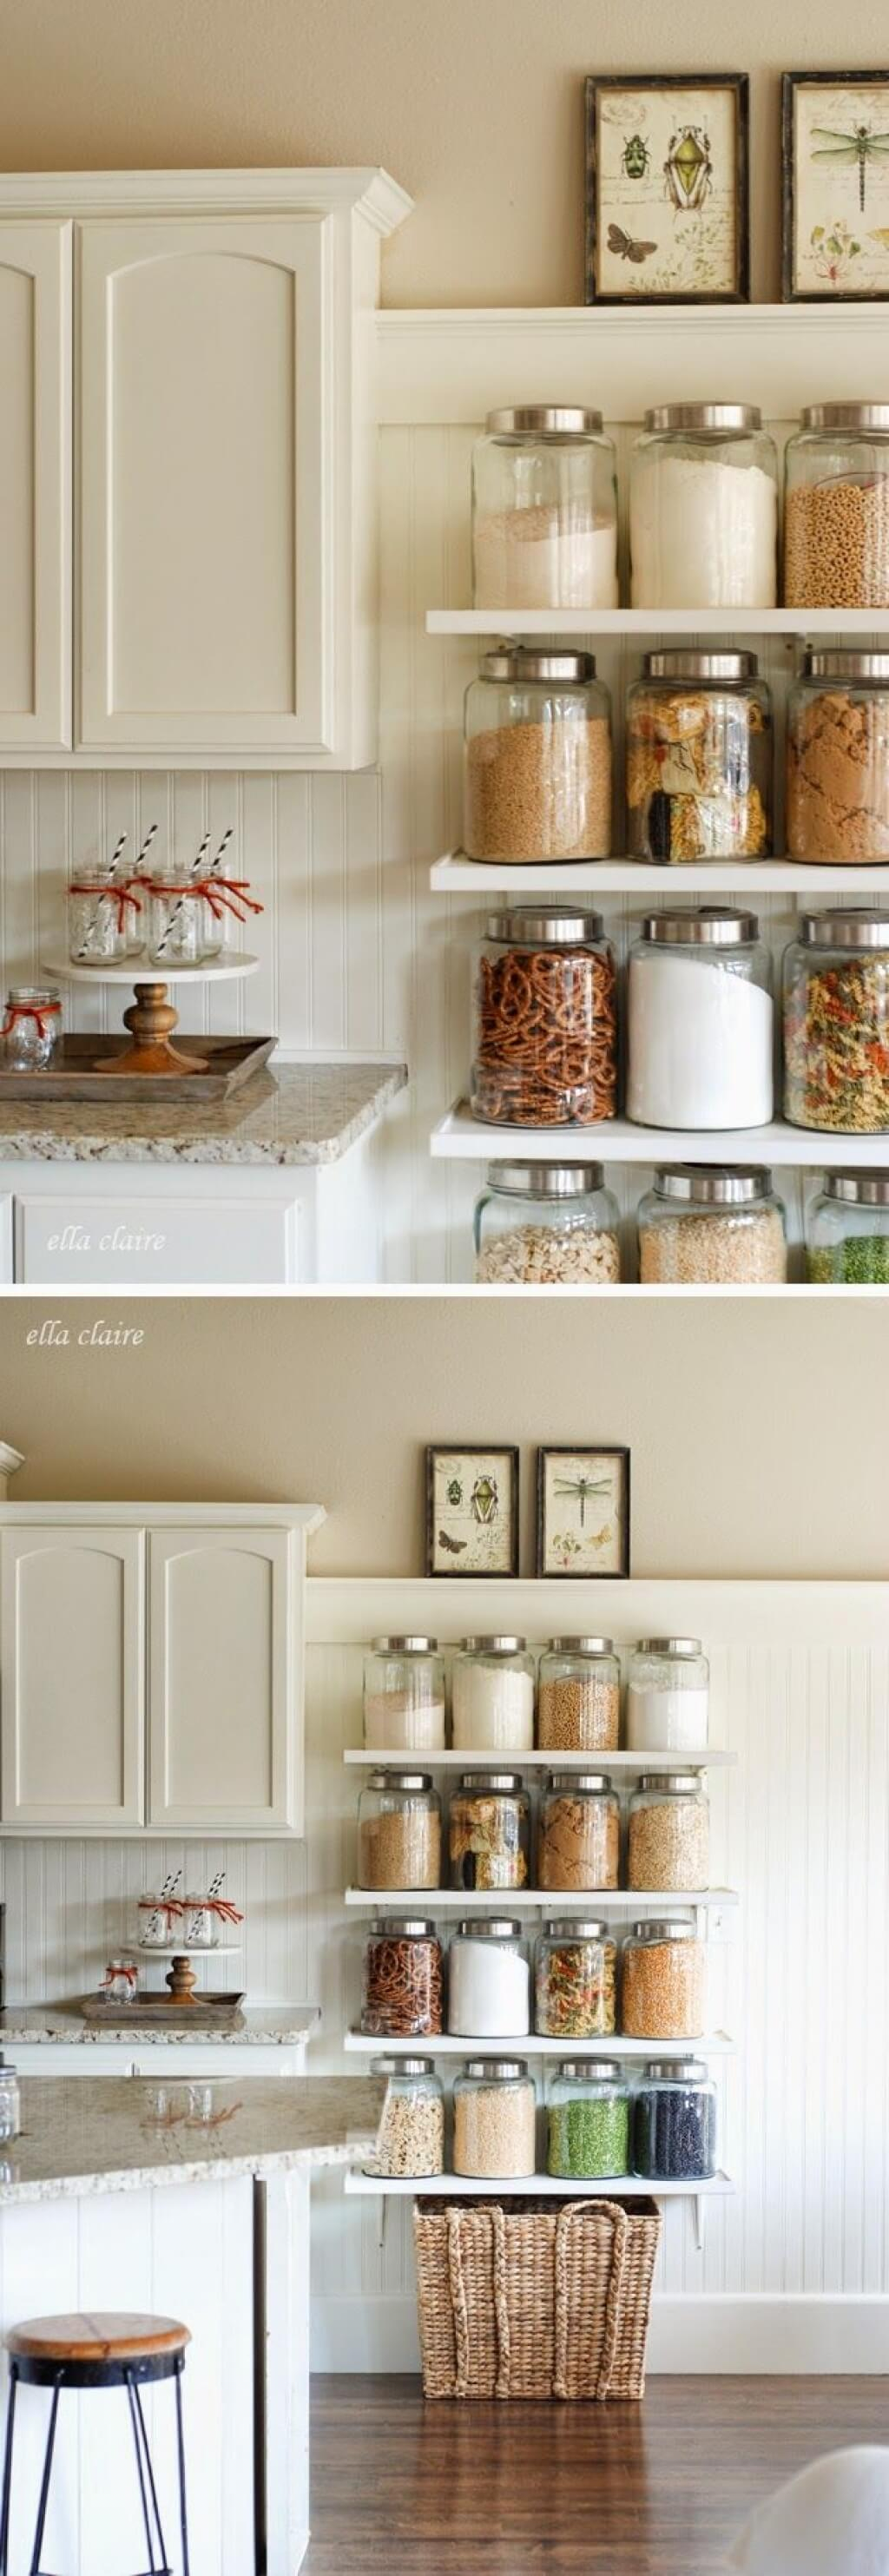 7 shelves for cooking essentials and snacks - Kitchen Organization Ideas